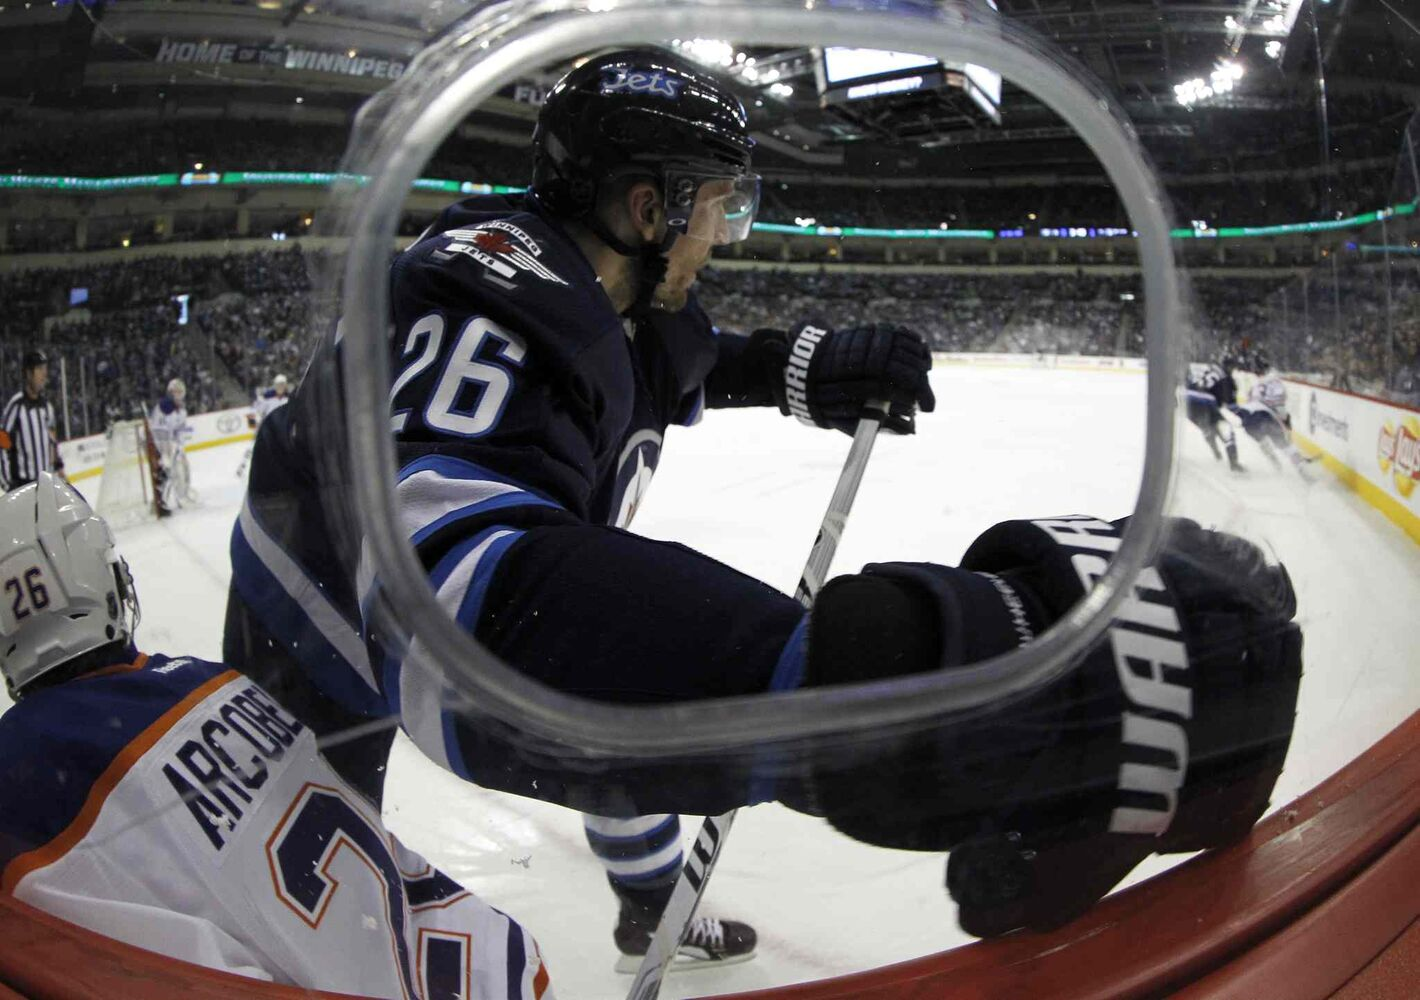 Winnipeg Jets' Blake Wheeler (26) hits Edmonton Oilers' Mark Arcobello (26) during the second period of Saturday's NHL game at MTS Centre. (Trevor Hagan / Winnipeg Free Press)